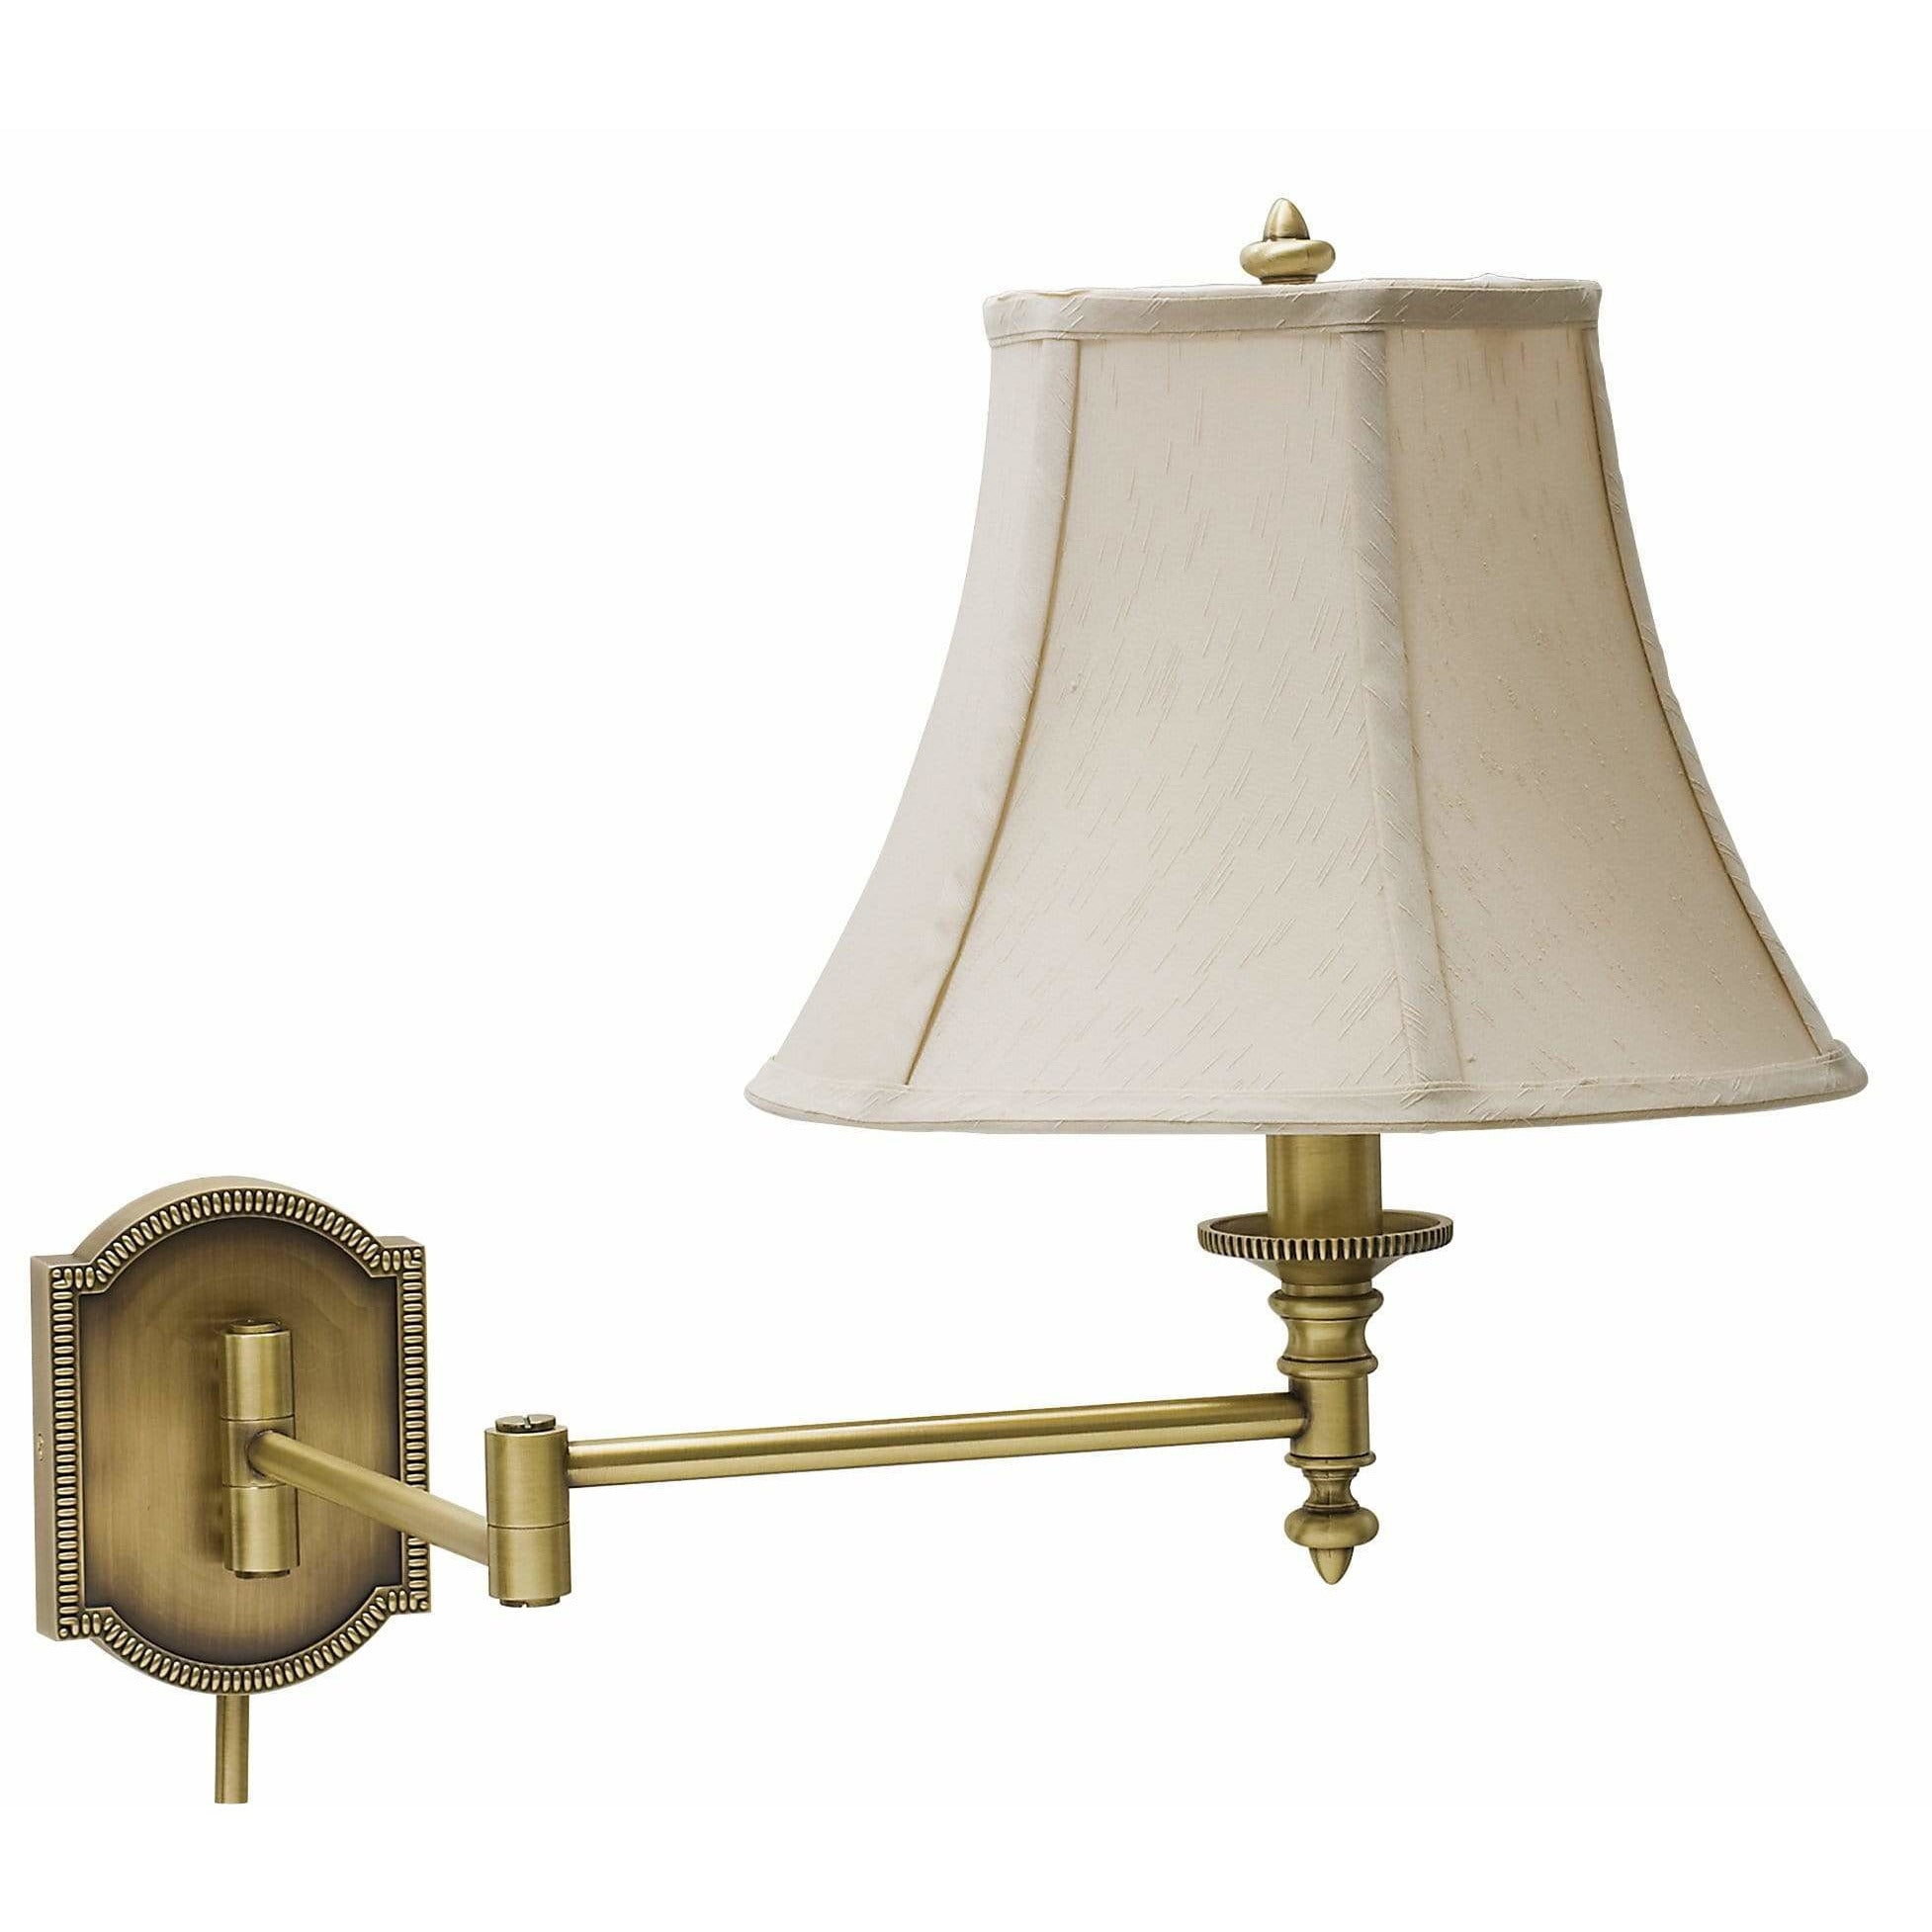 House Of Troy Wall Lamps Swing Arm Wall Lamp by House Of Troy WS761-AB